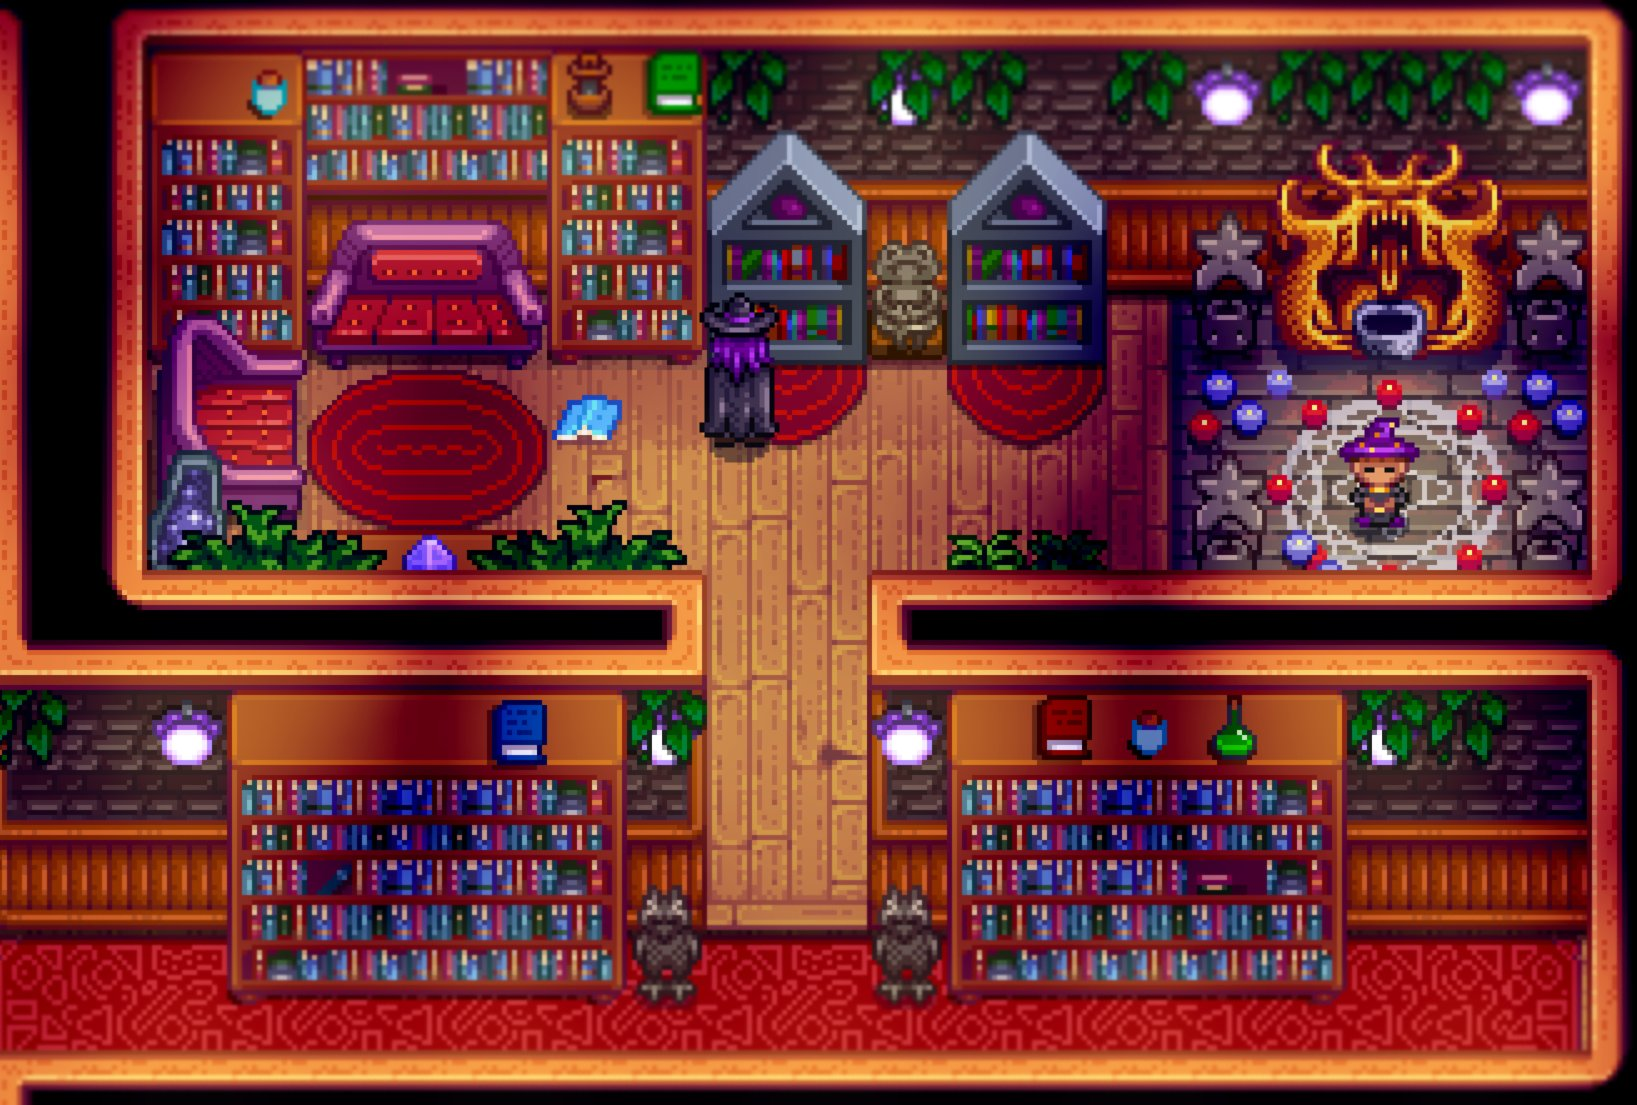 Flashshifter On Twitter The Wizard And Morgan Have Schedules In The Basement Of The Wizard S Tower Where They Read And Practice Magic In 1 10 Stardewvalley Stardewvalleyexpanded Https T Co 93zon20x13 He can't be visited without the mandatory quest, which is unlocked several weeks into the story. the wizard and morgan have schedules in